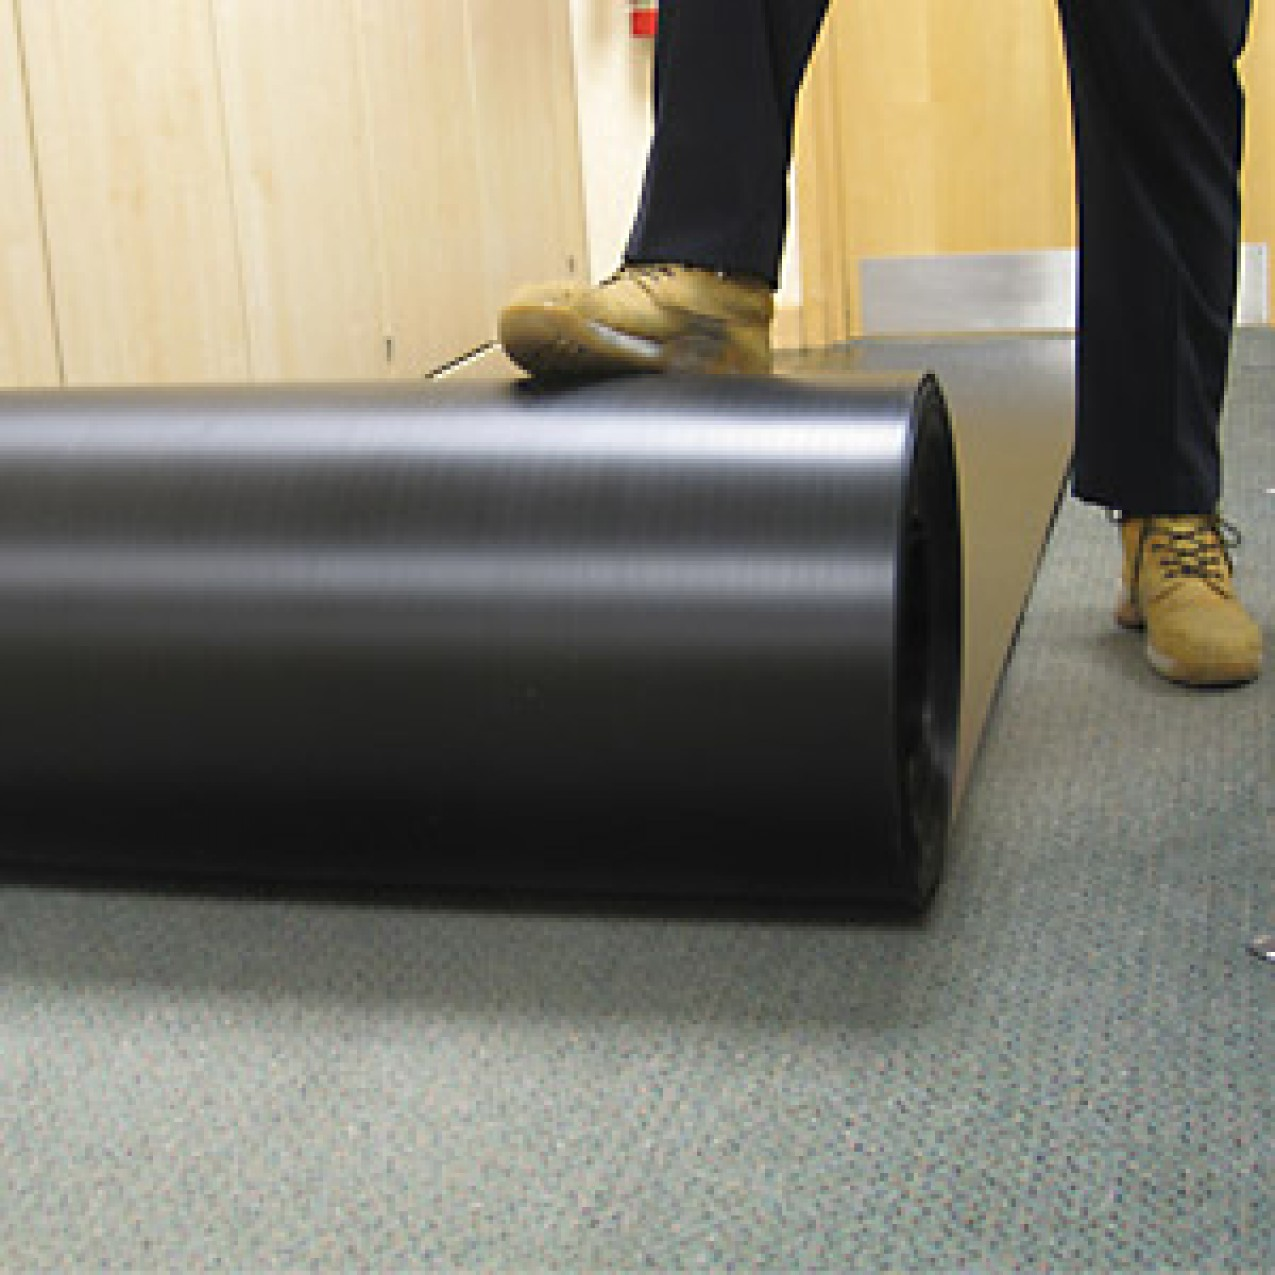 Correx ® (corex) Corrugated Plastic Roll Floor & Surface Protector 1M x 50M x 2mm Black